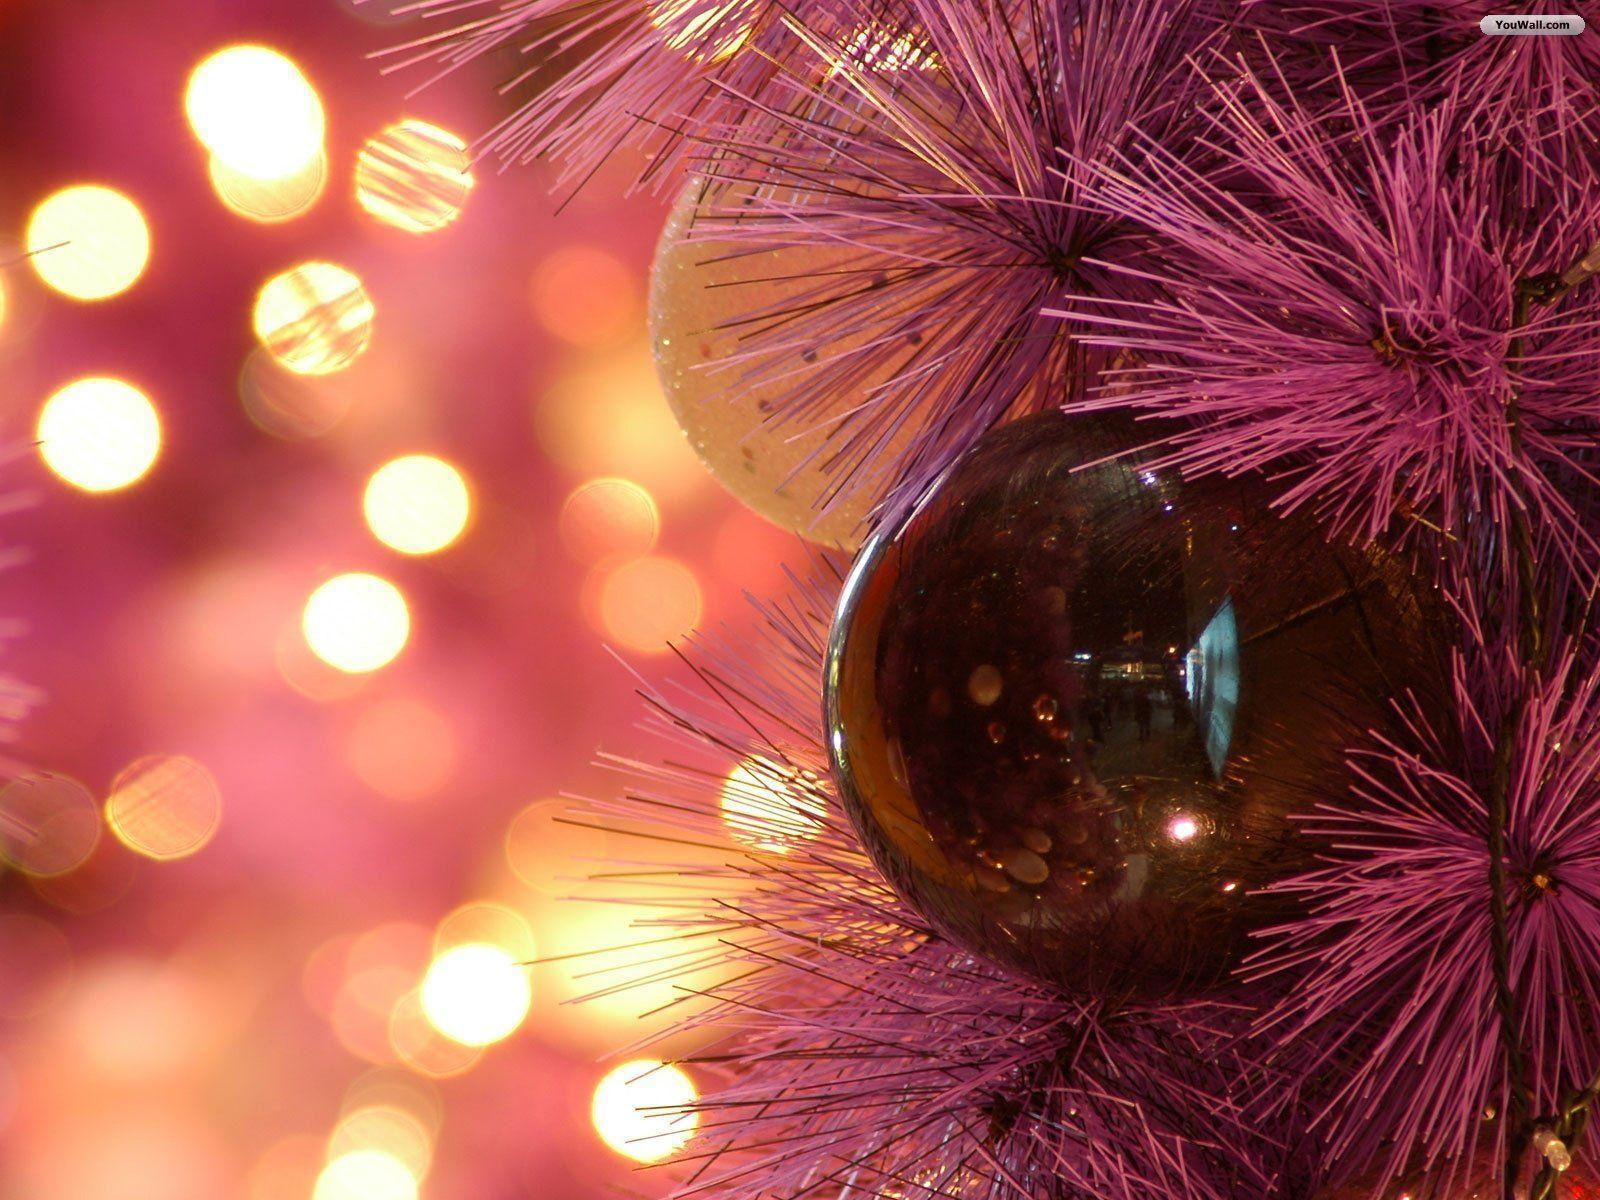 Wallpapers For > Red Christmas Ornaments Wallpaper